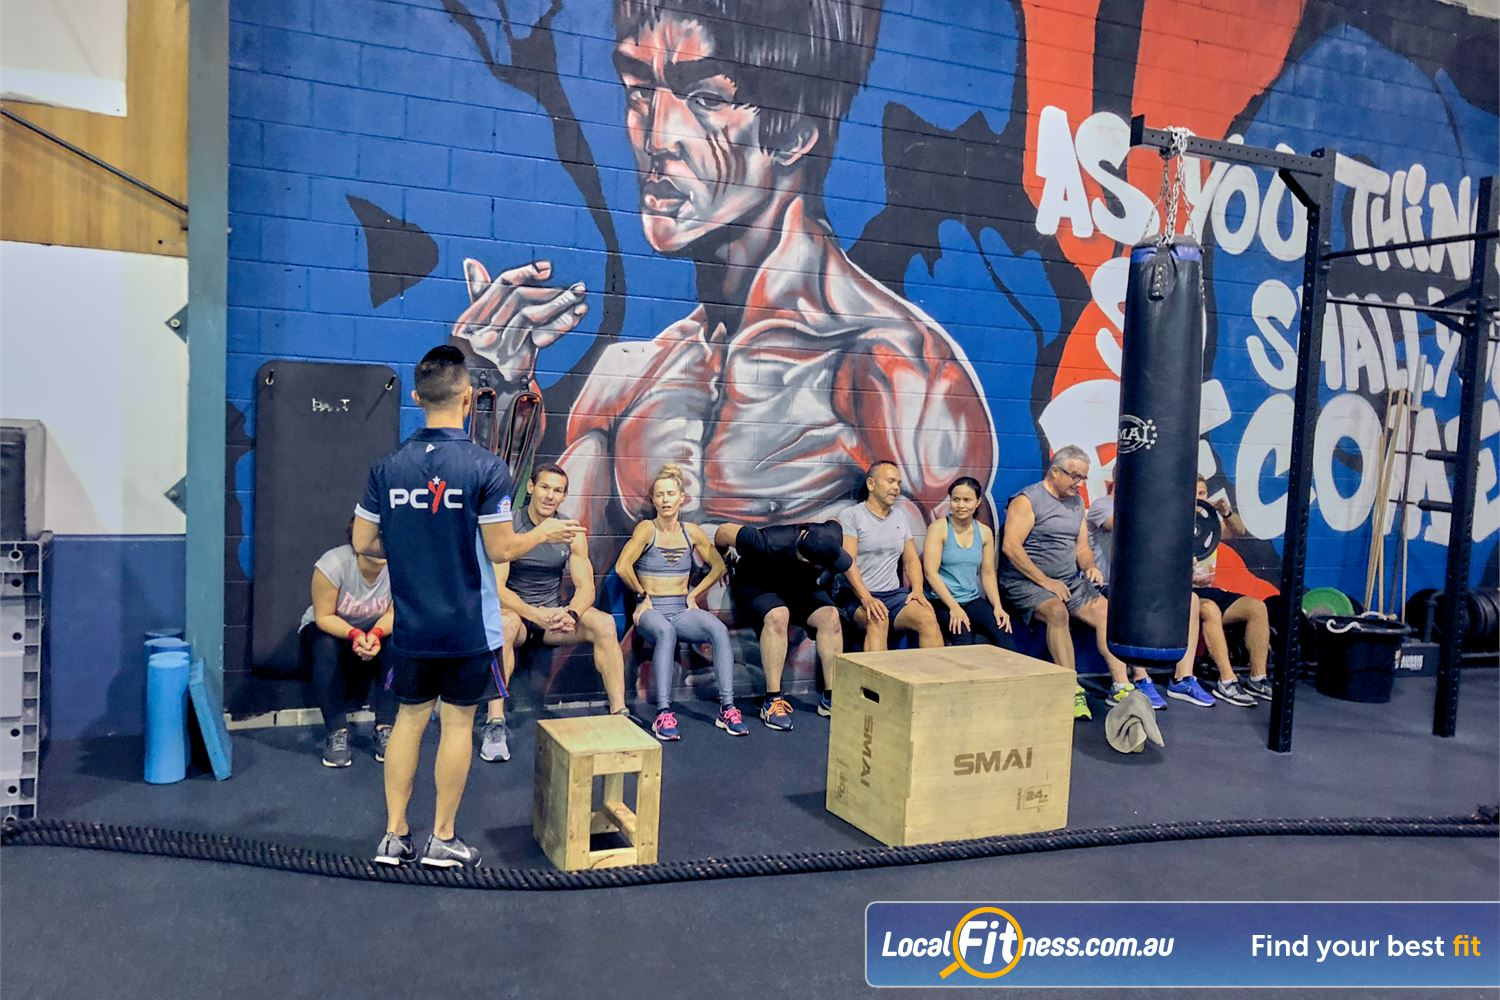 PCYC Auburn Near Rookwood Get the best of our functional training area with our range of classes.